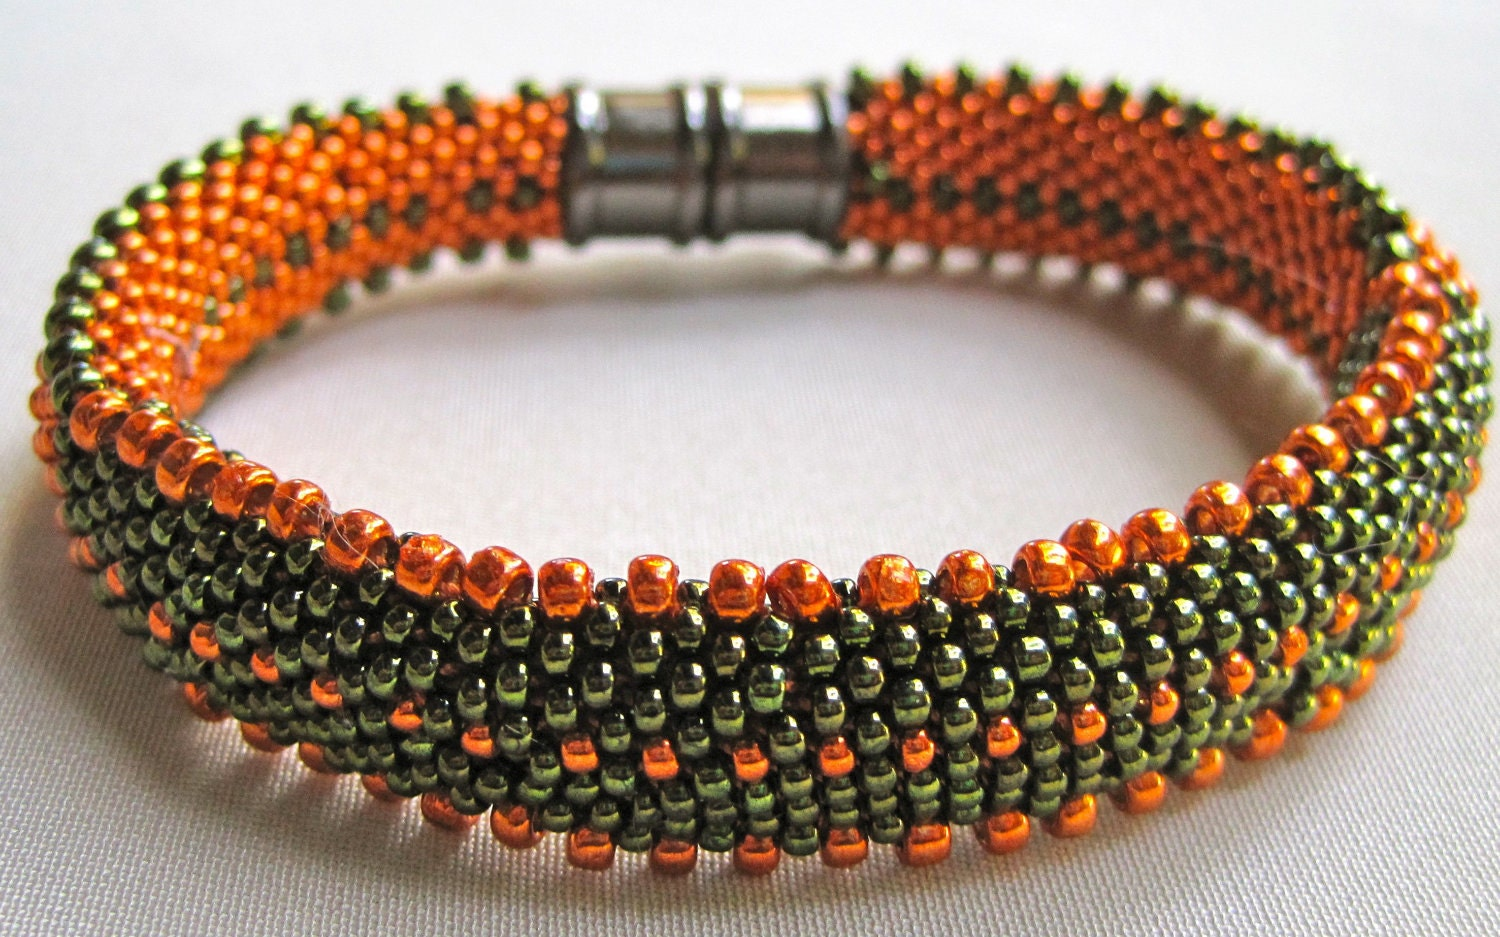 Bead Crochet Bangle Pattern: Lots of Dots Bead Crochet